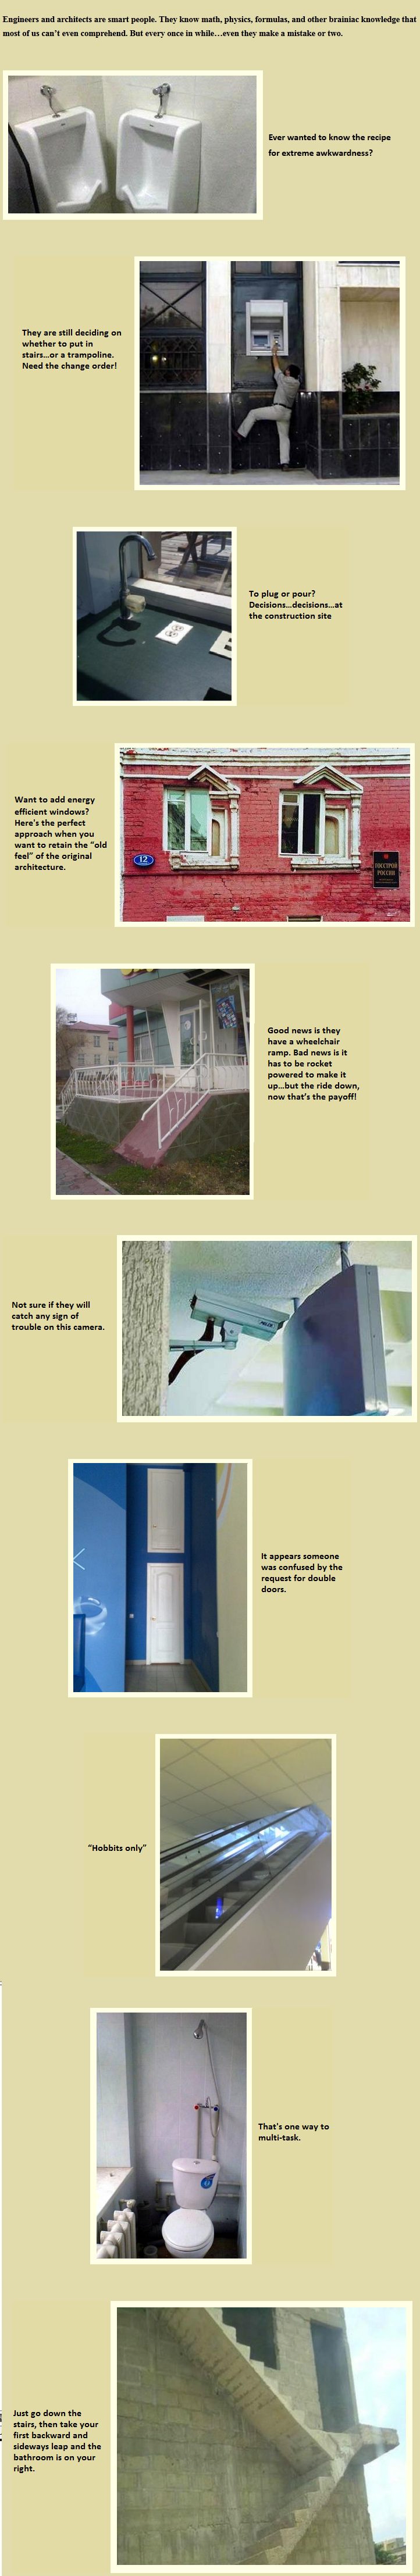 Designs you don't see every day!  Funny mistakes.  Engineering fails.